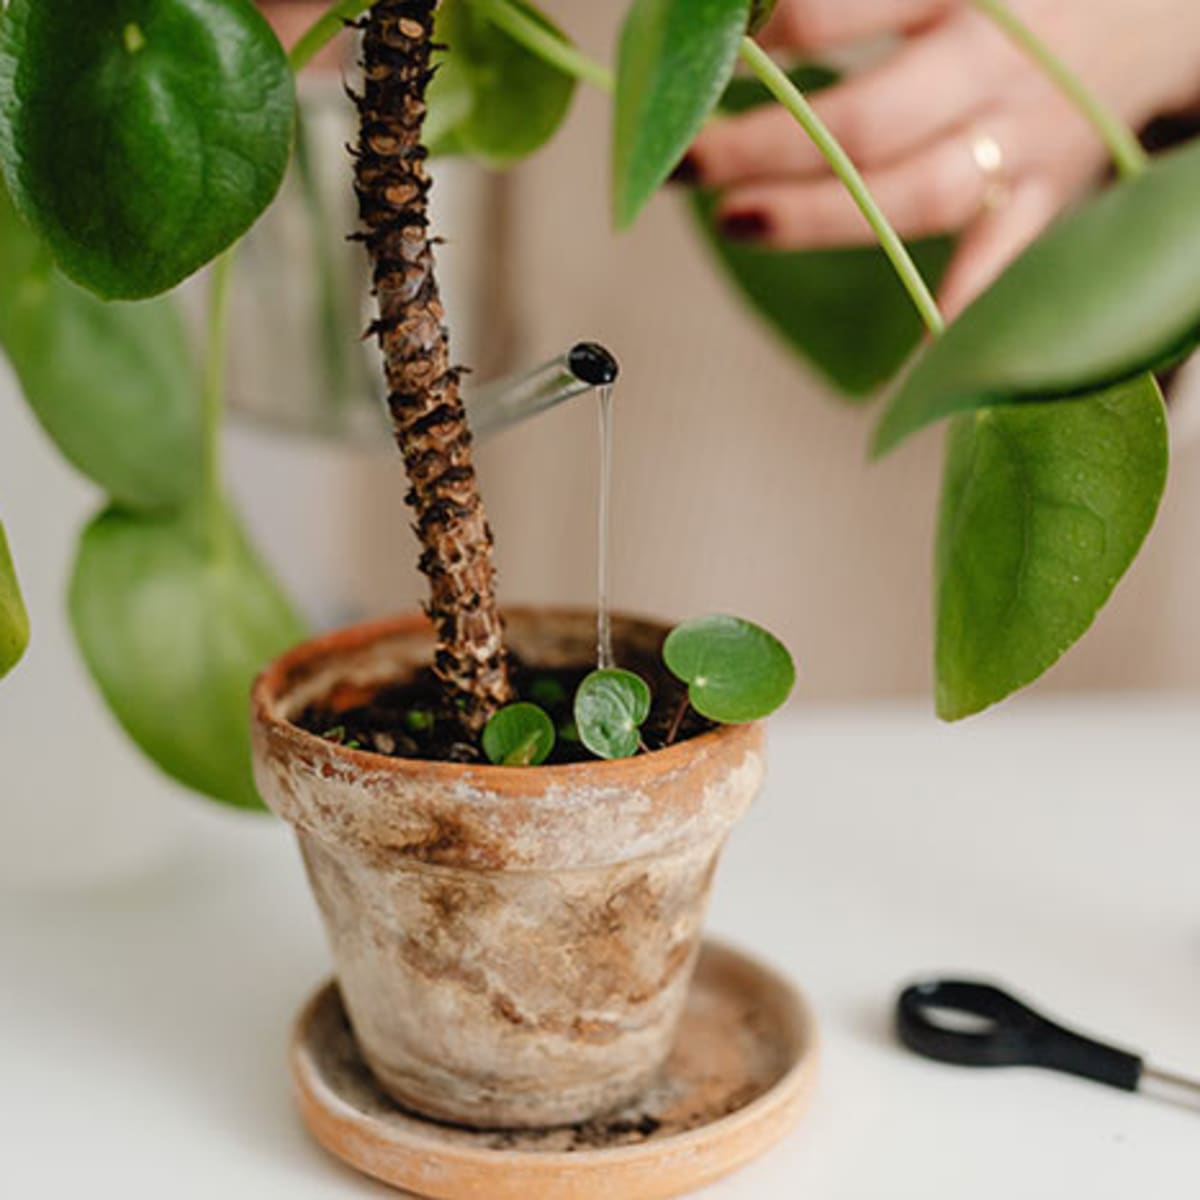 Watering Houseplants Tricks and Tips   Horticulture